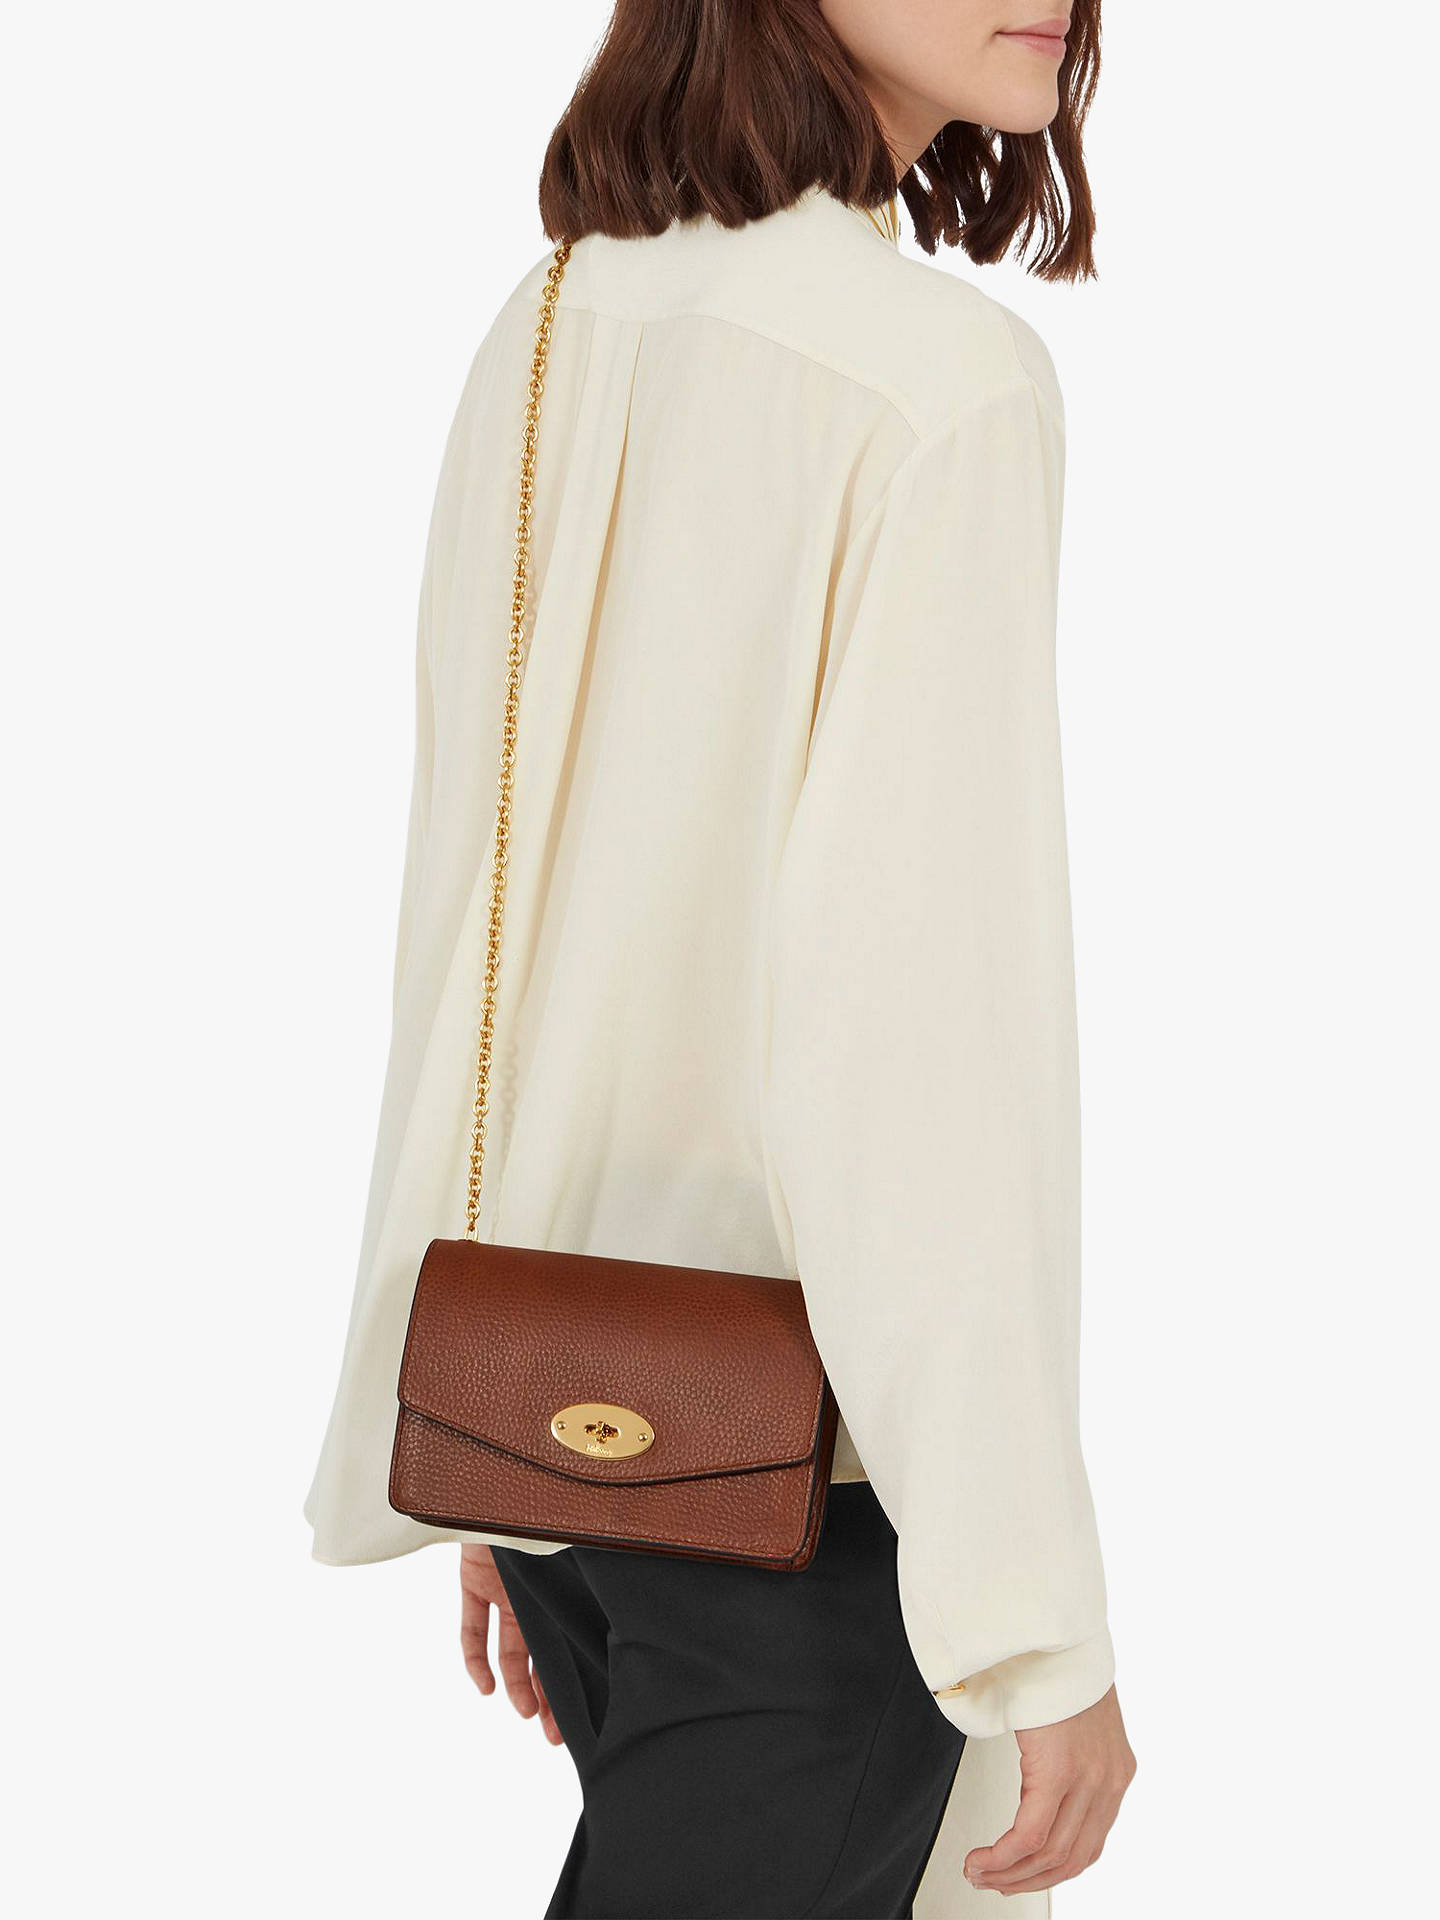 f8741297f8 ... Buy Mulberry Small Darley Grain Veg Tanned Leather Cross Body Bag